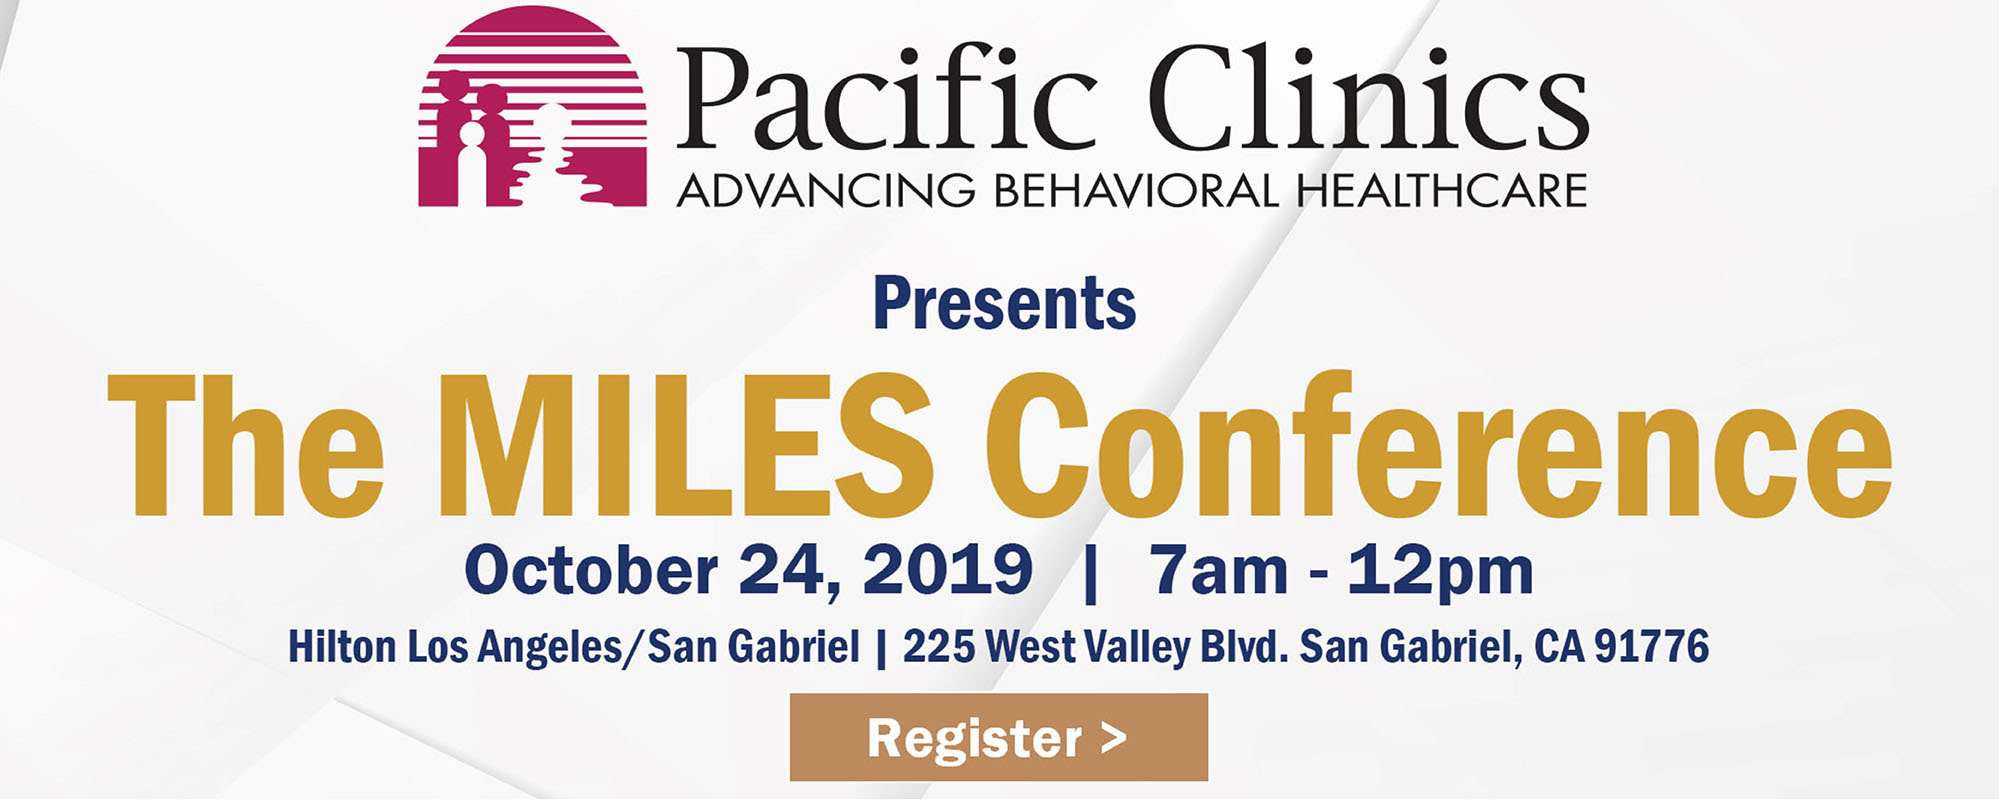 Pacific Clinics | Advancing Behavioral Healthcare